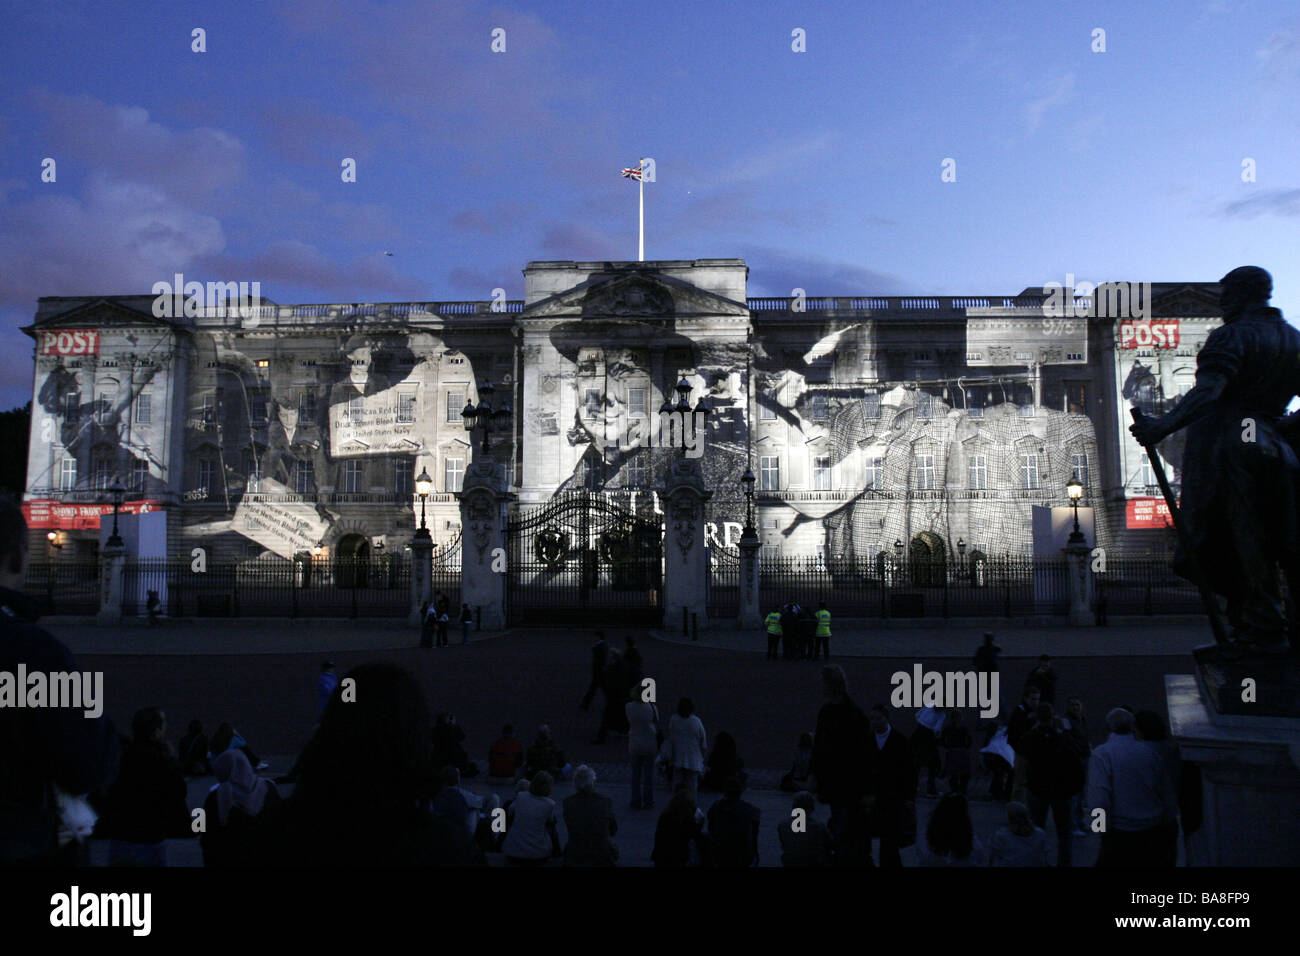 Images of British magazine Picture Postl are cast on Buckingham Palace in London. Photo by Akira Suemori - Stock Image